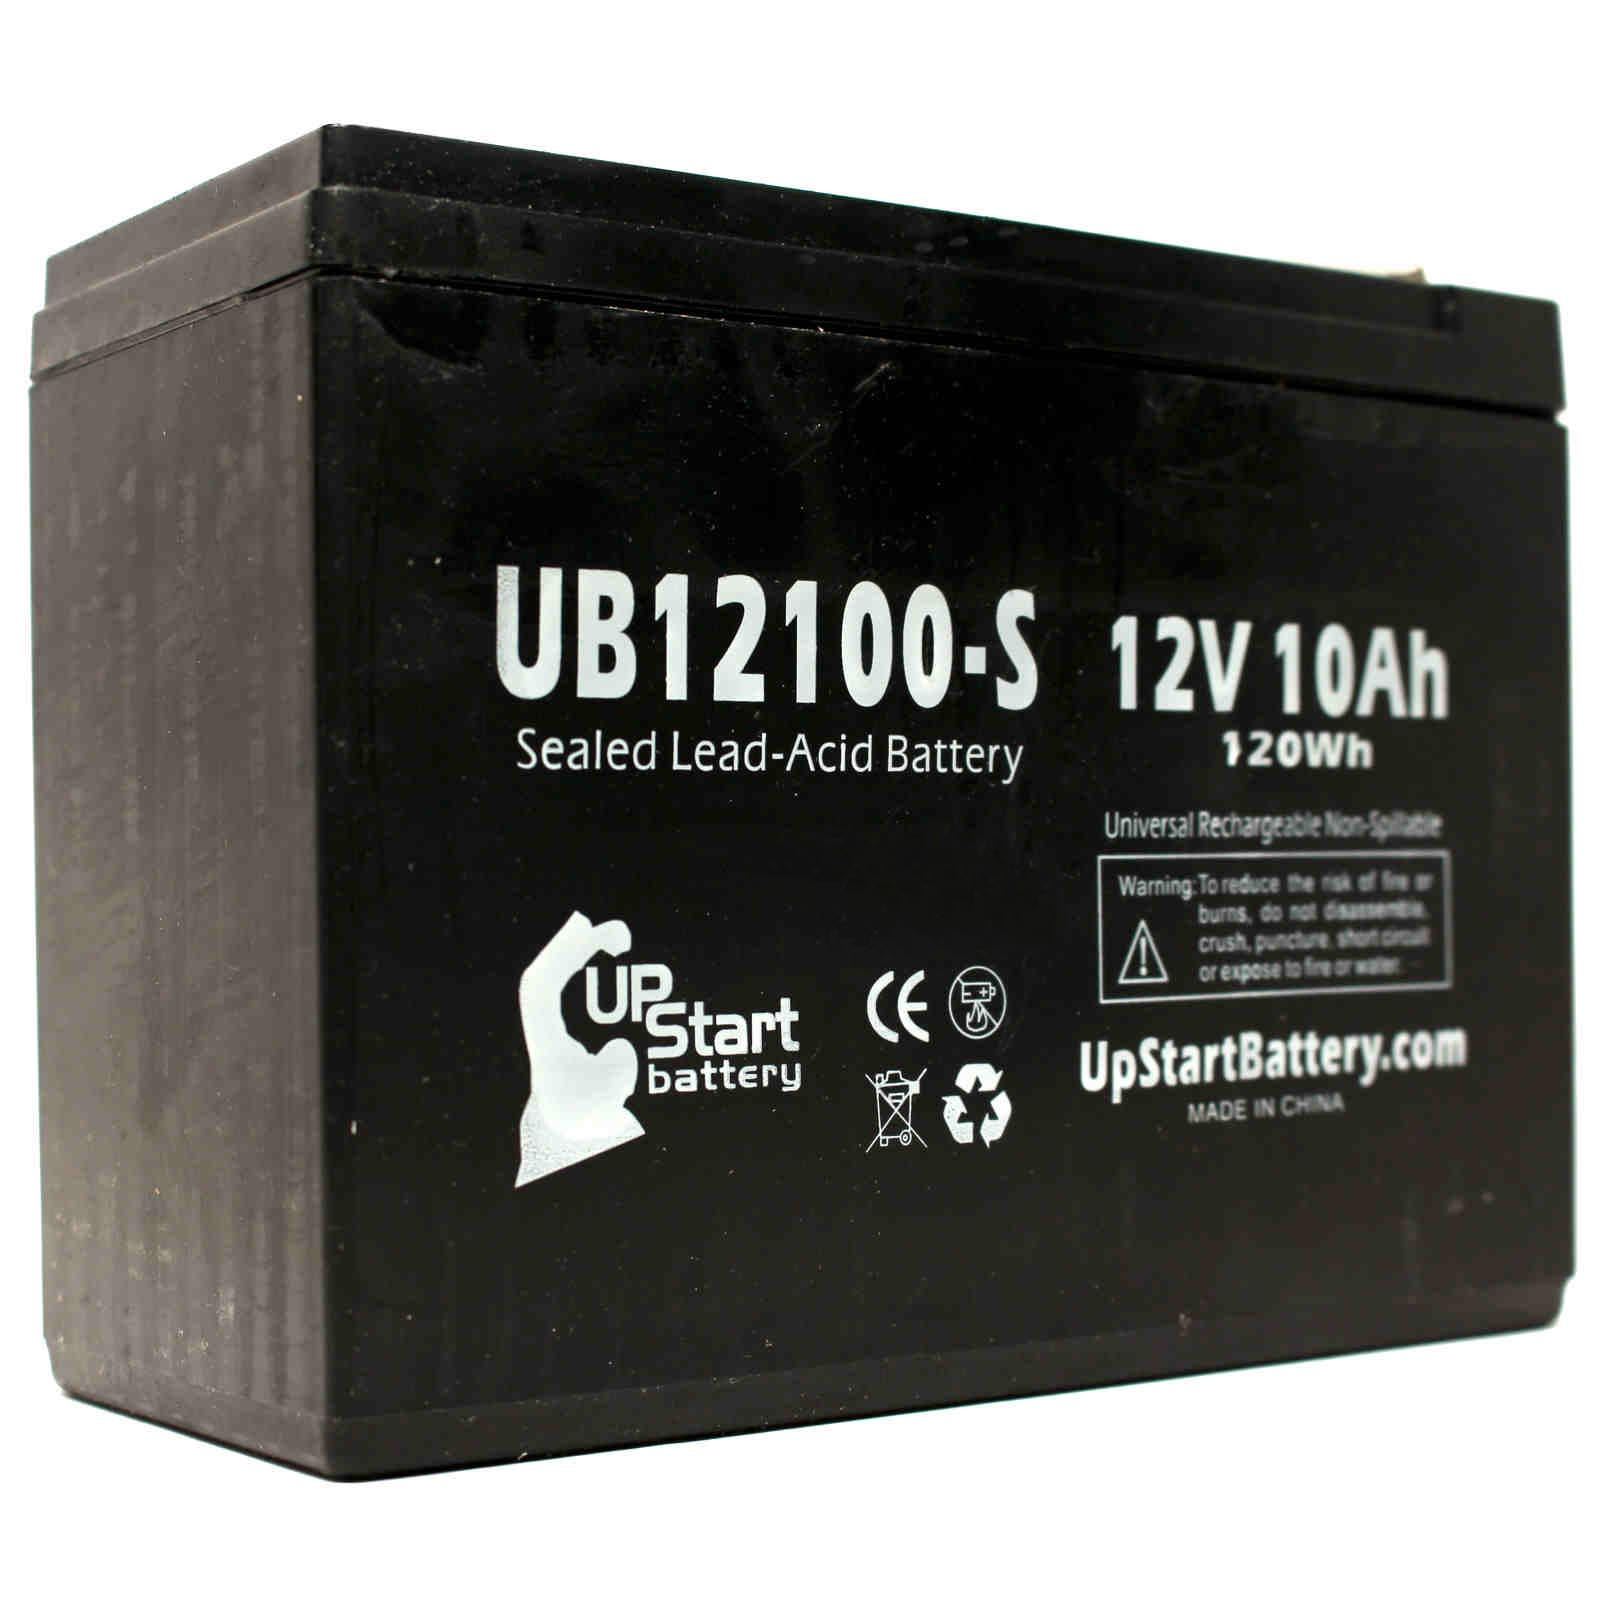 5-Pack UB12100-S Universal Sealed Lead Acid Battery (12V, 10Ah, F2 Terminal, AGM, SLA) Replacement - Compatible With Schwinn S500, S350, Missile FS, S180, S750, S600, Razor Rebellion Chopper - image 3 of 4